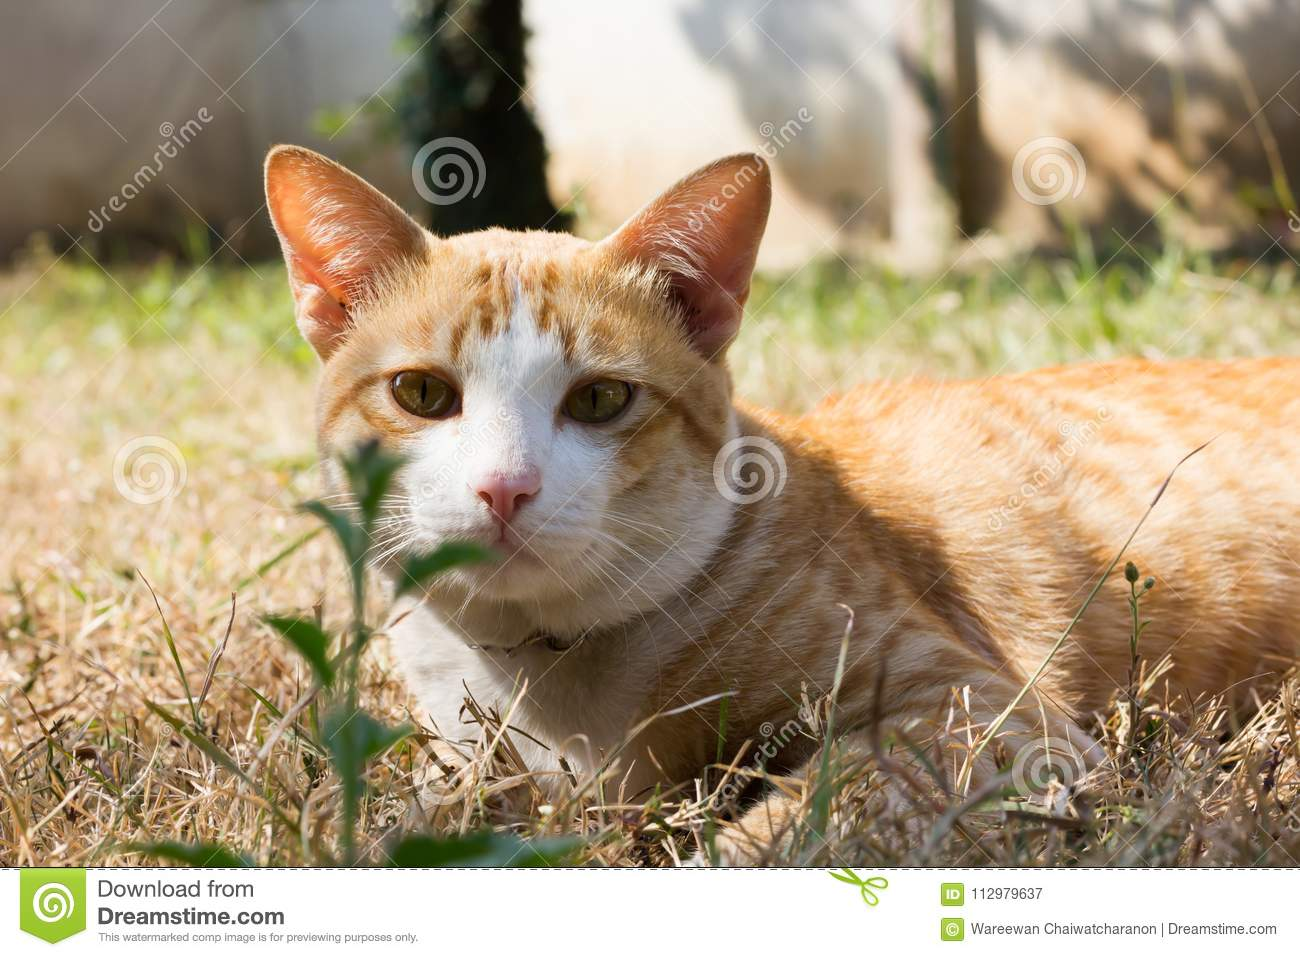 Close-up yellow light brown cat at the face, cat on dry grass field